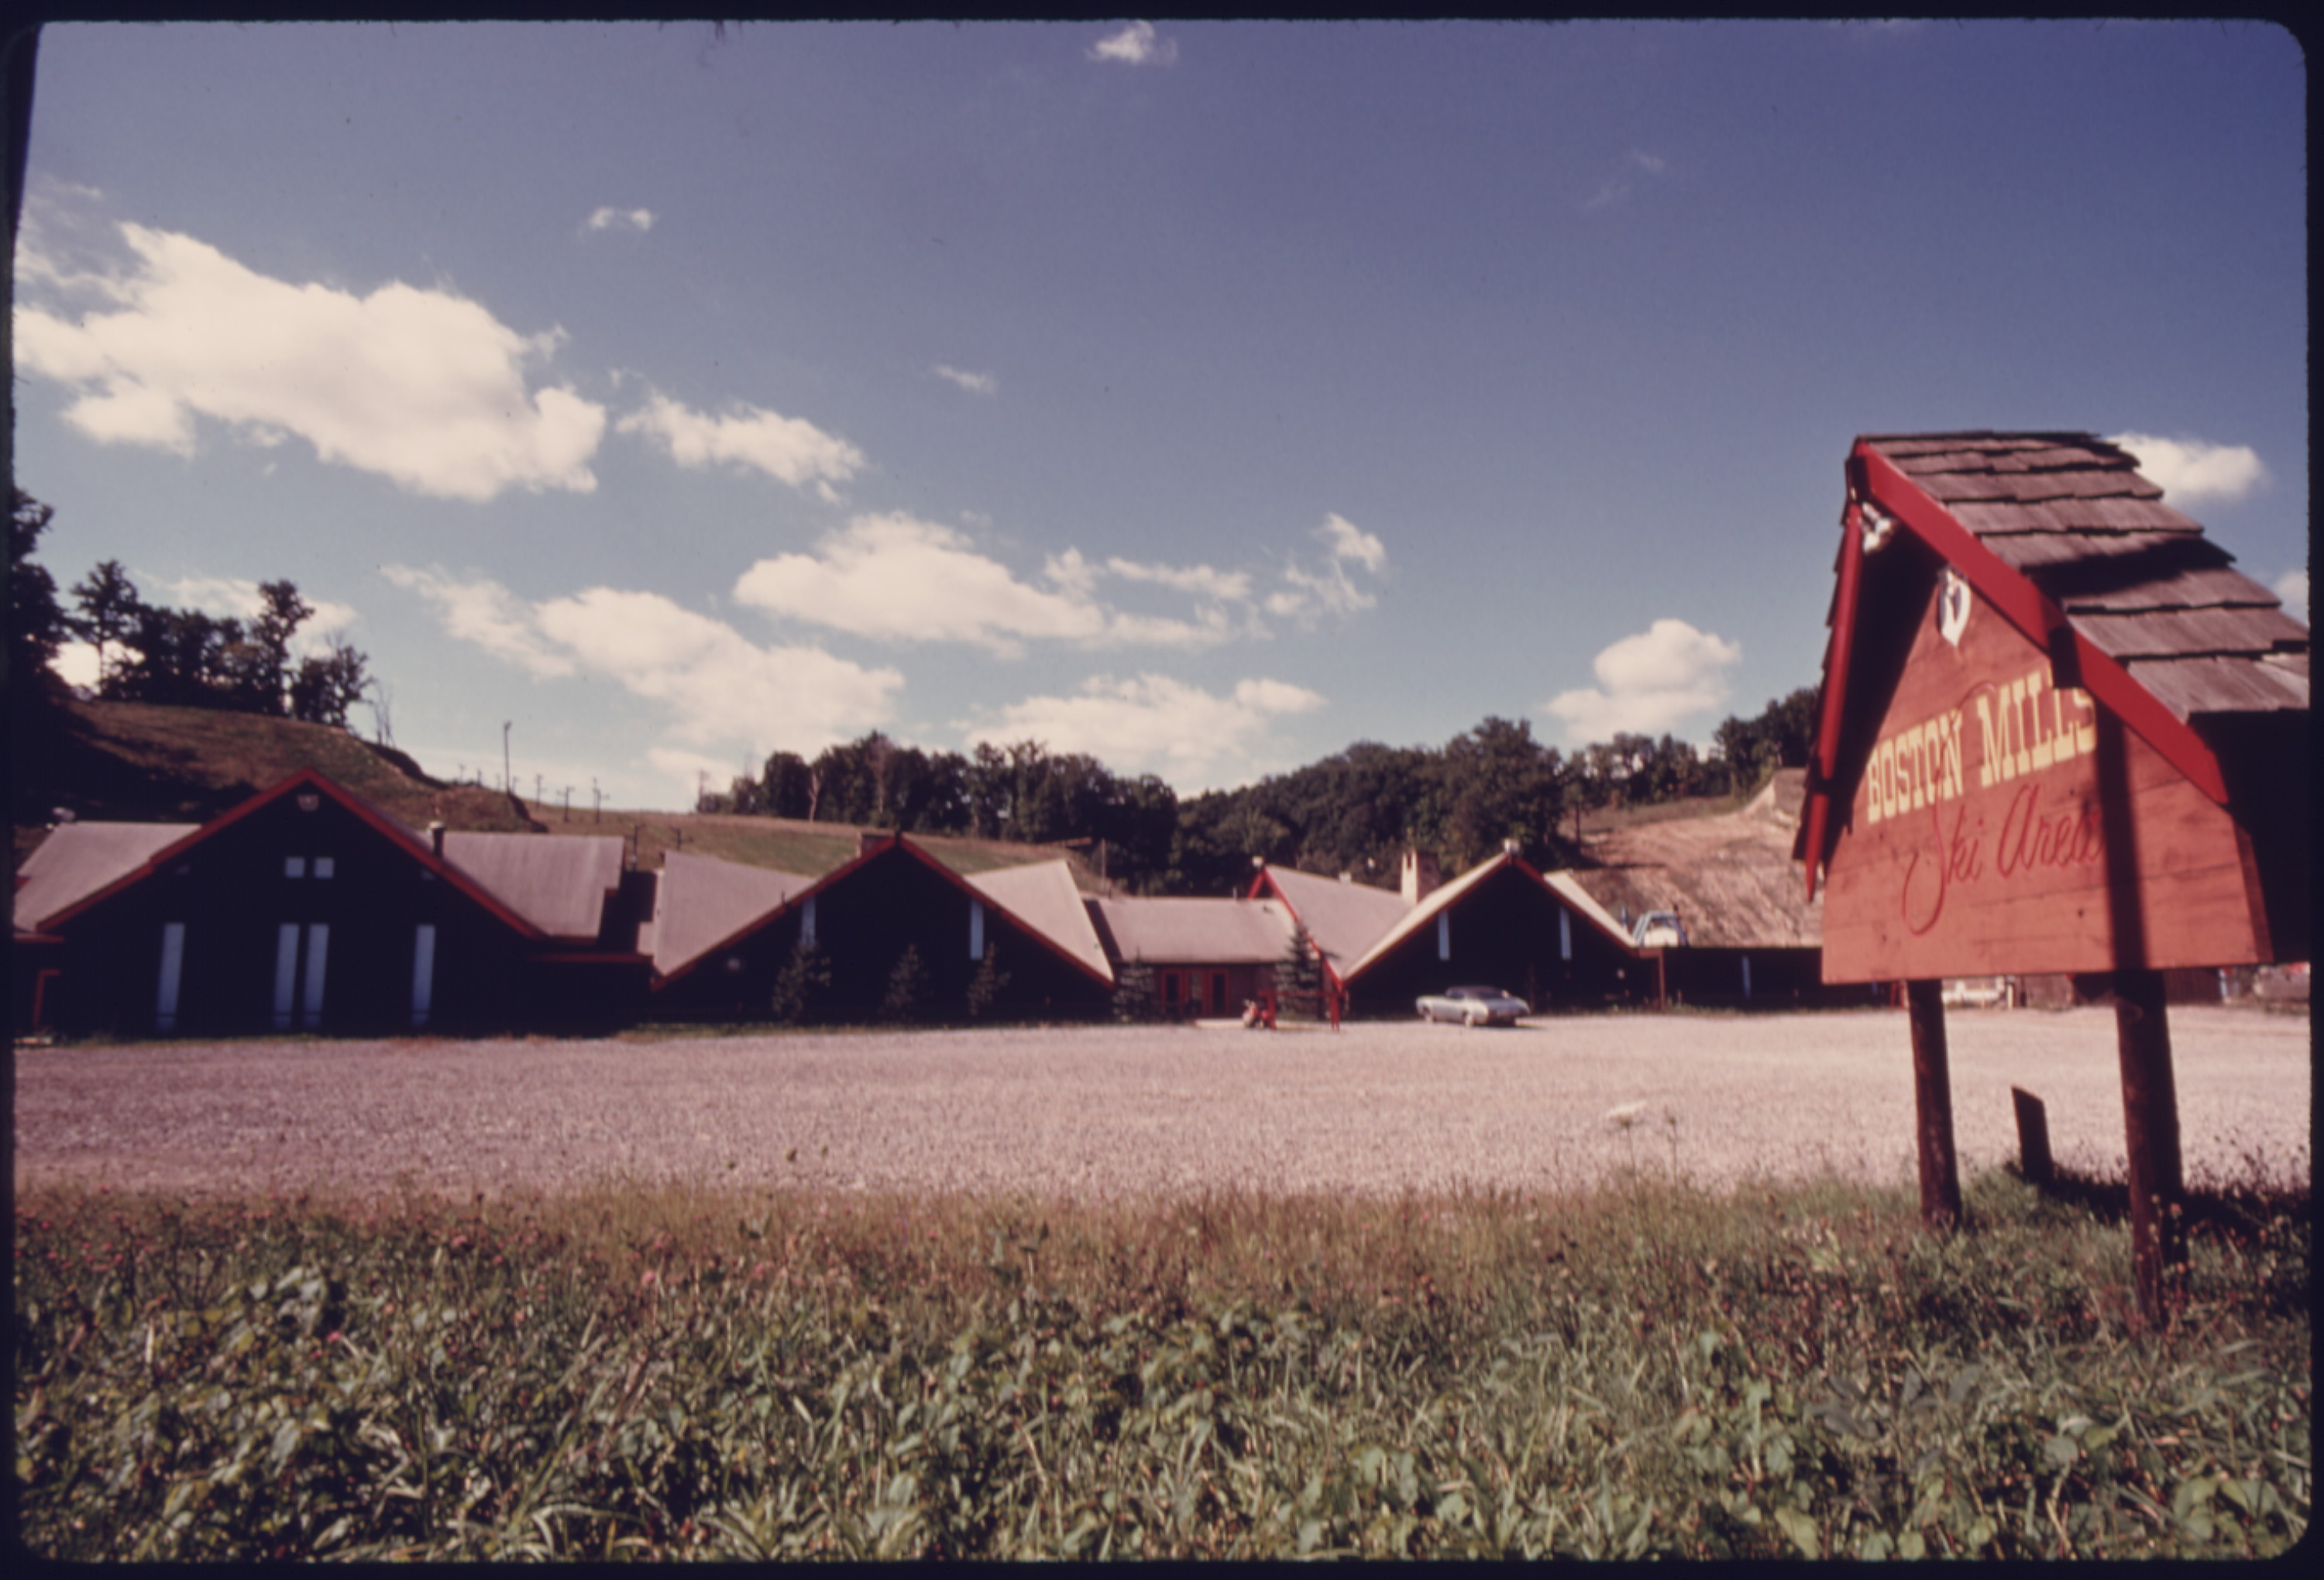 file ski lodge and slopes in the background in boston township at riverview road and boston